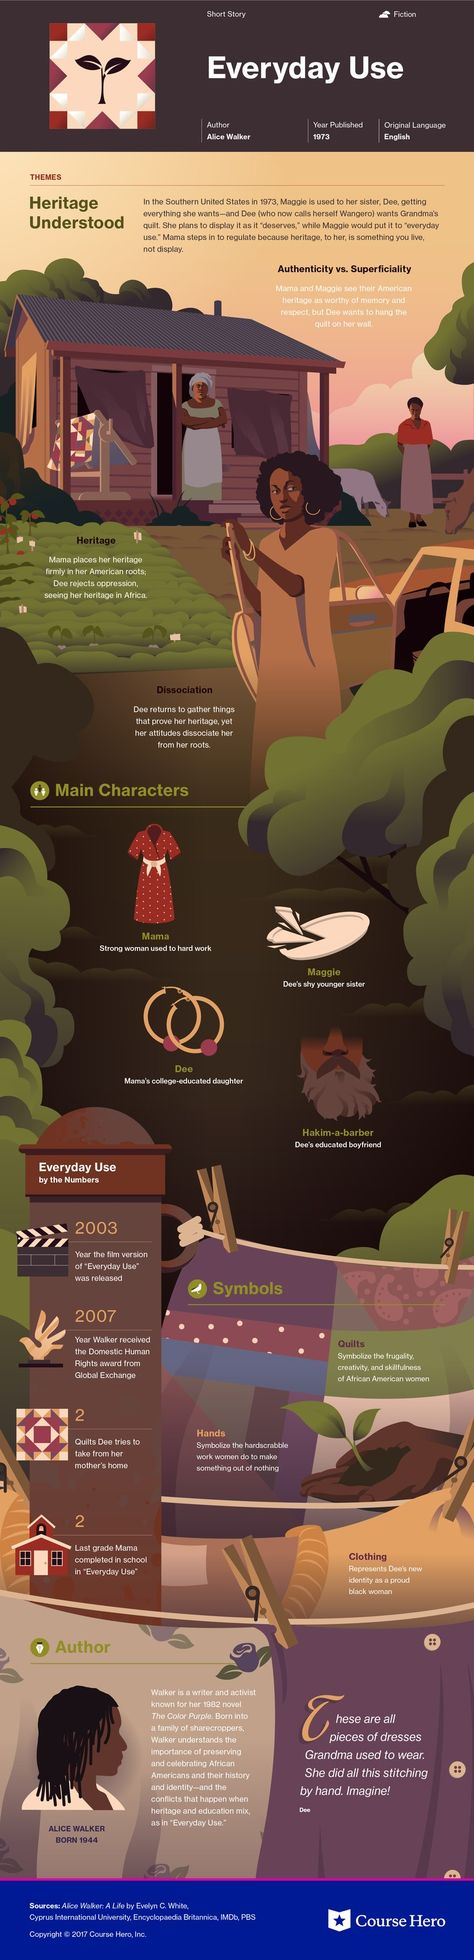 Alice Walker's Everyday Use Infographic | Course Hero: https://www.coursehero.com/lit/Everyday-Use/